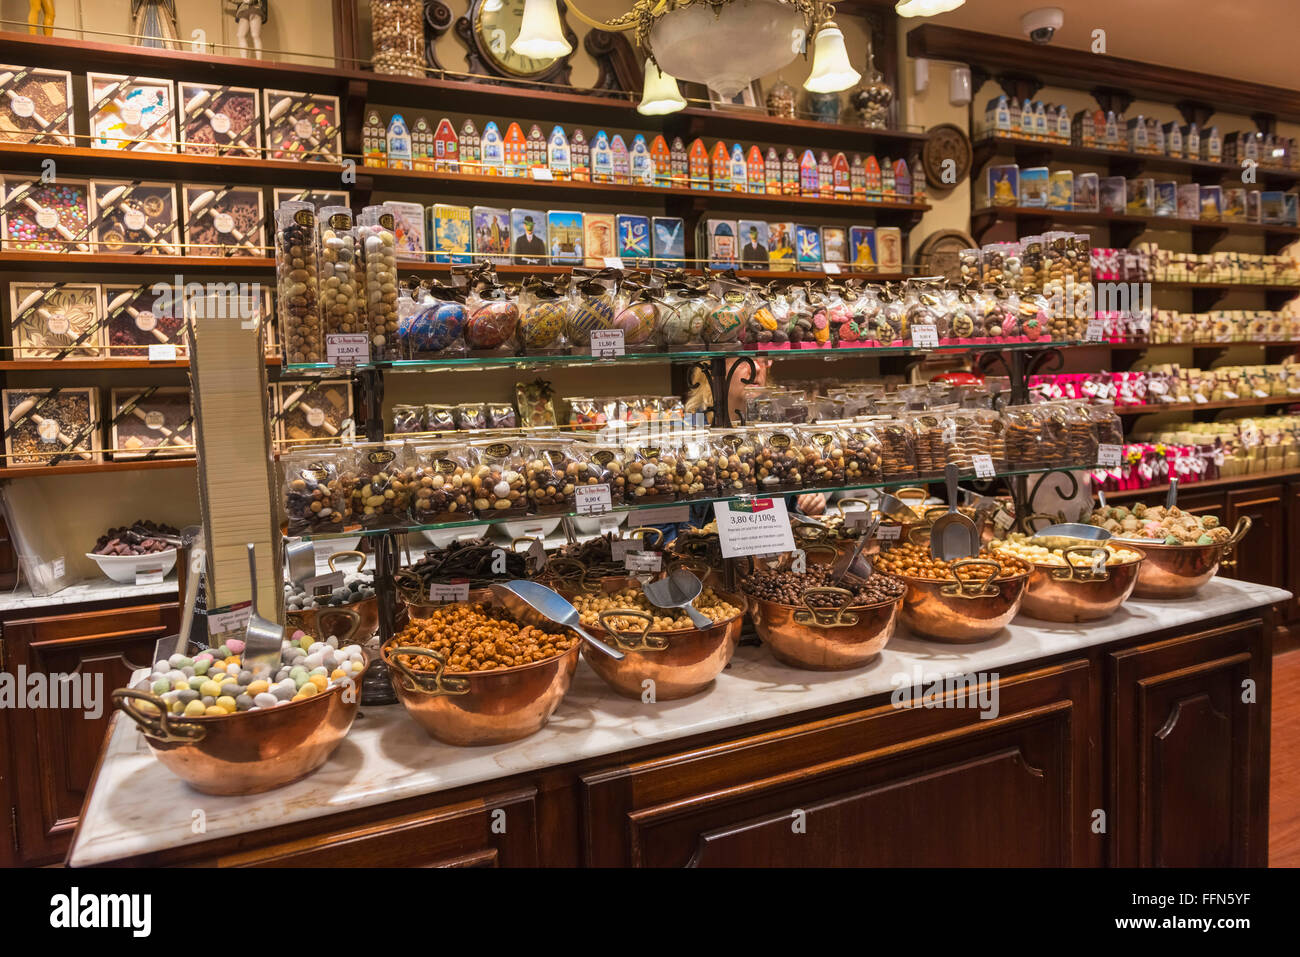 Belgian Chocolates on display inside a chocolate shop in Brussels, Belgium, Europe - Stock Image